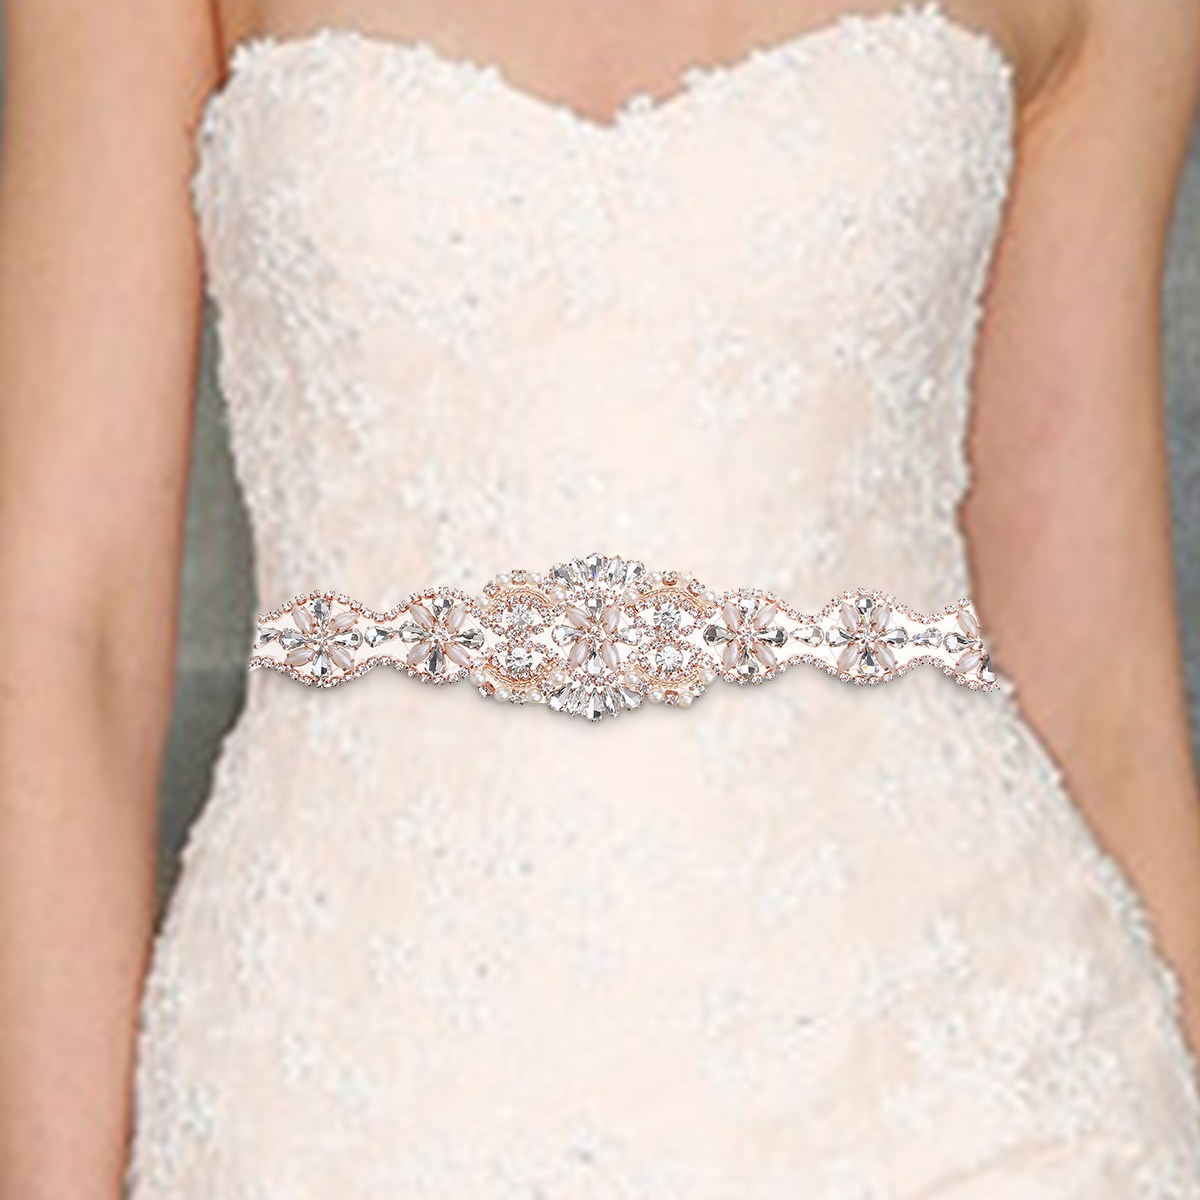 34cm DIY Crystal Applique Waistband, Women   Belt   Party Dress Sash Sewing Beaded Sparkle,Ribbon Waist Strap Rhinestone Accessories